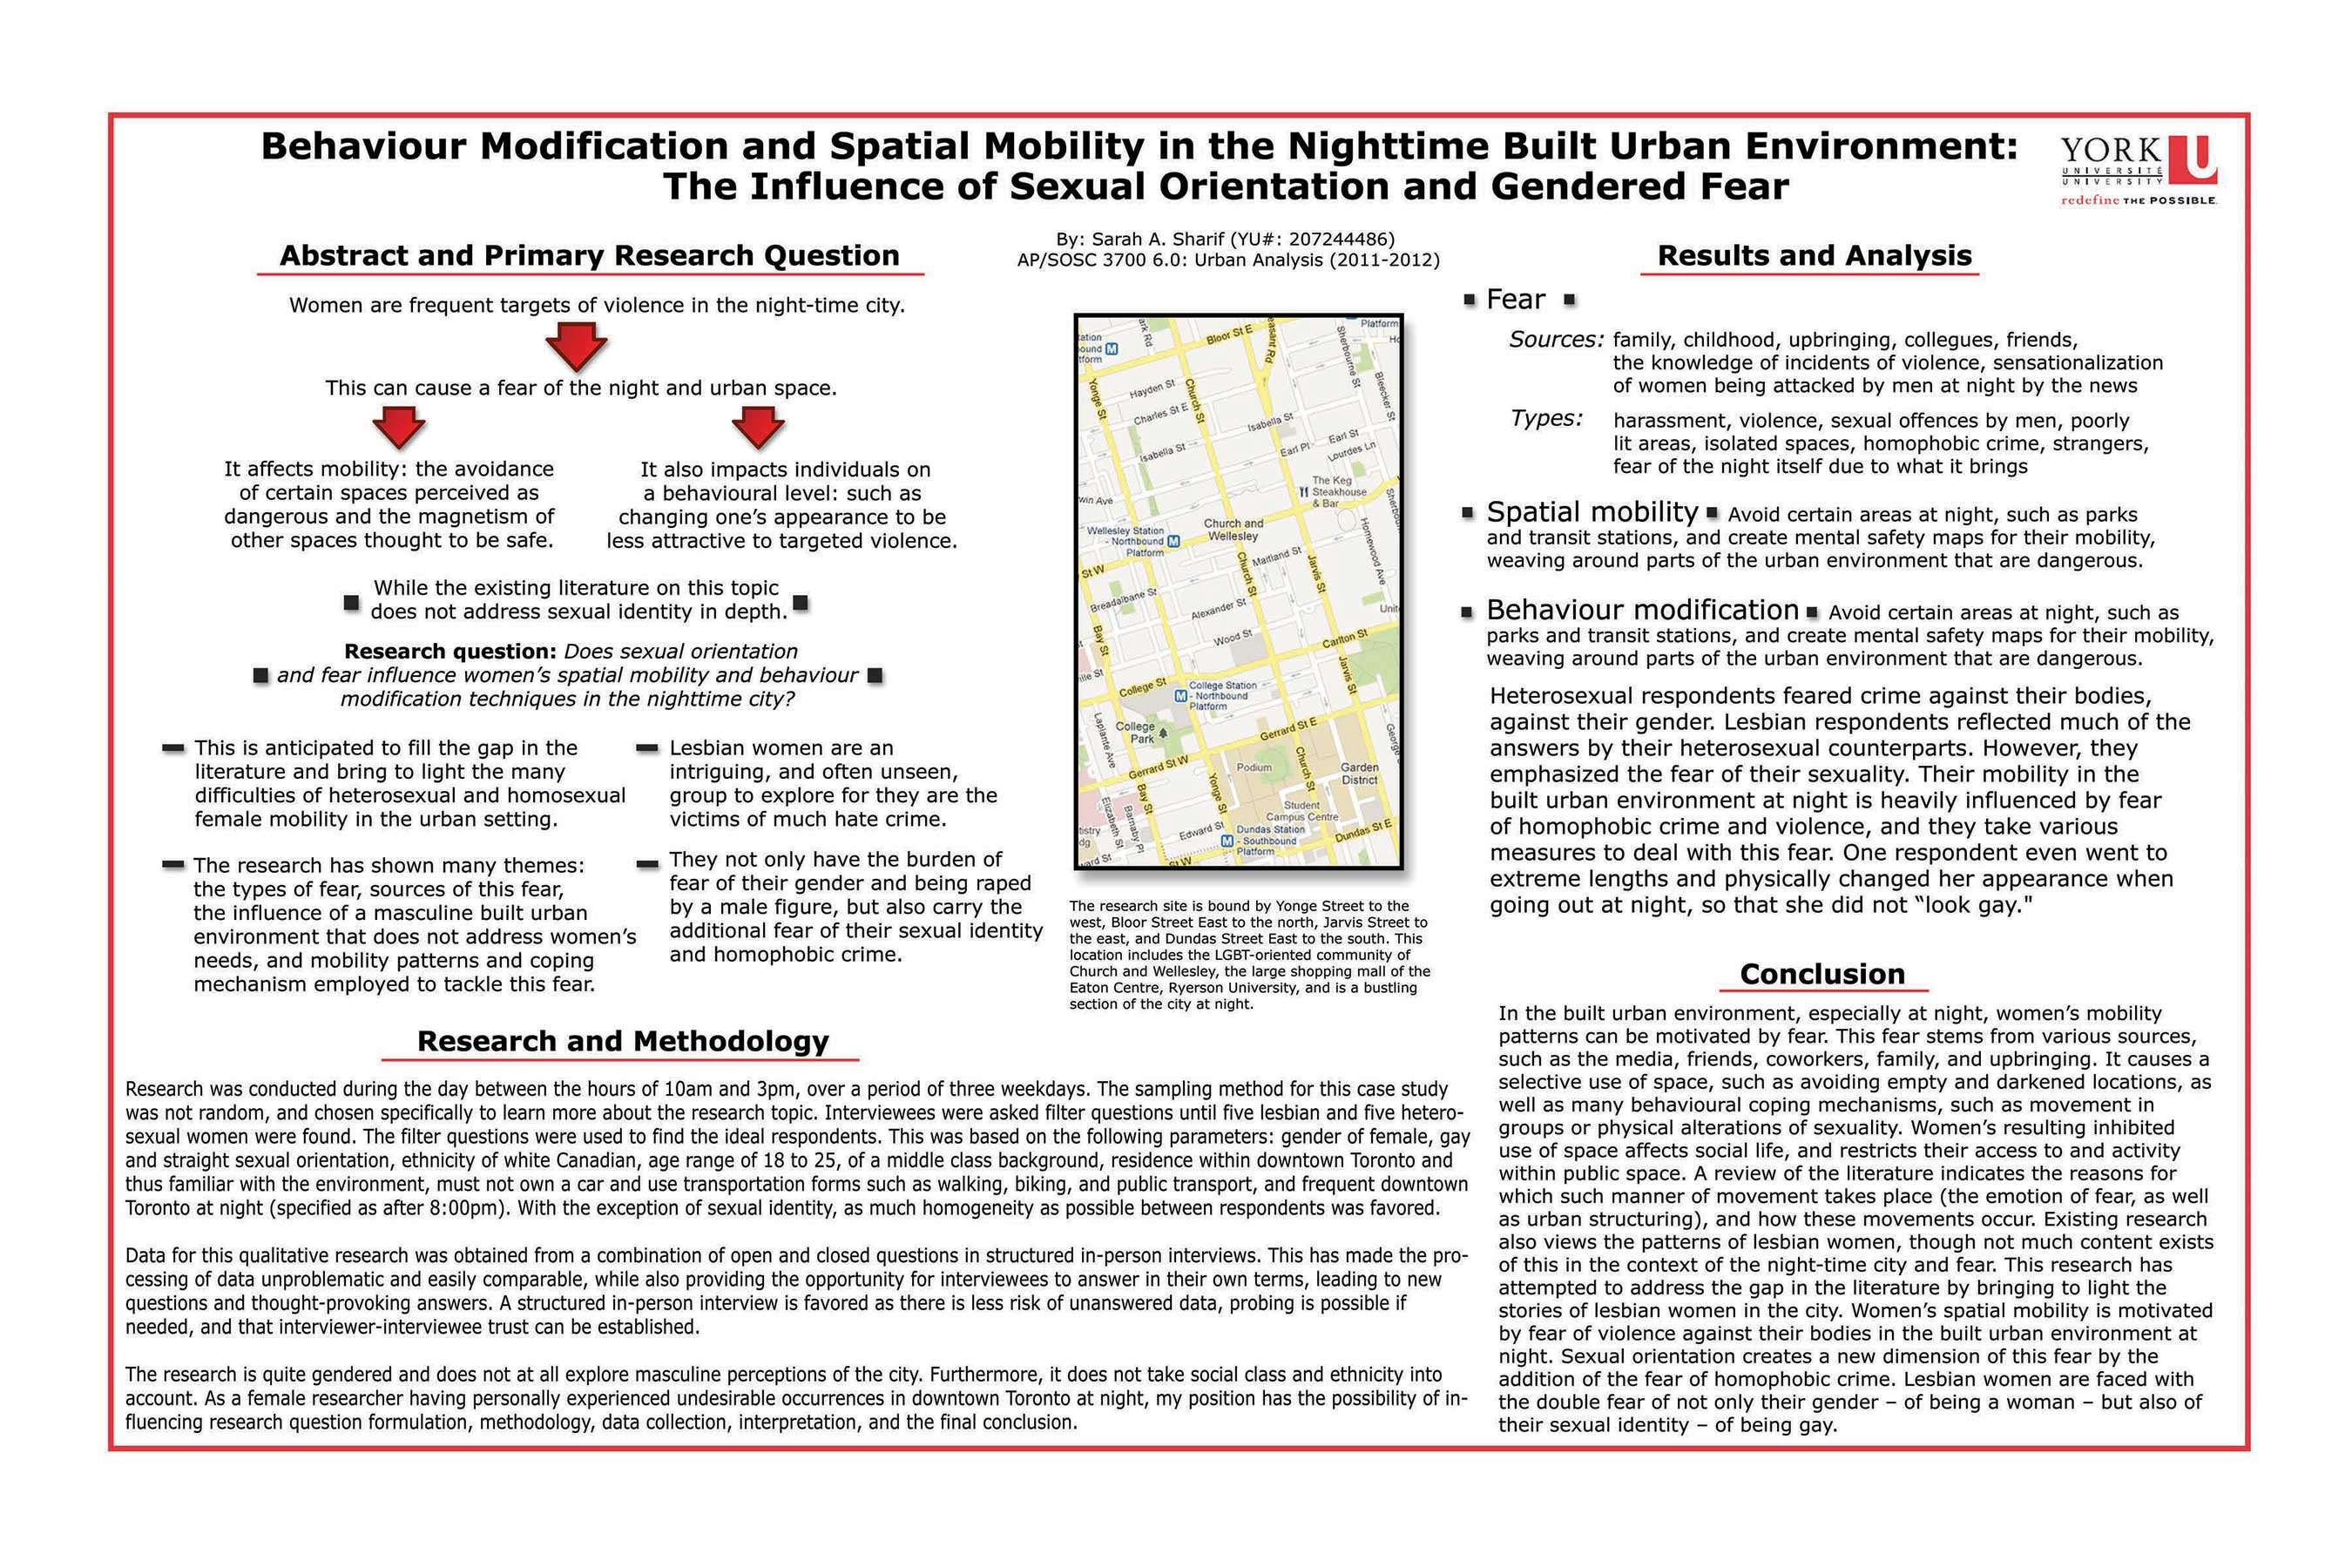 Image of Sarah Arai's Research Poster